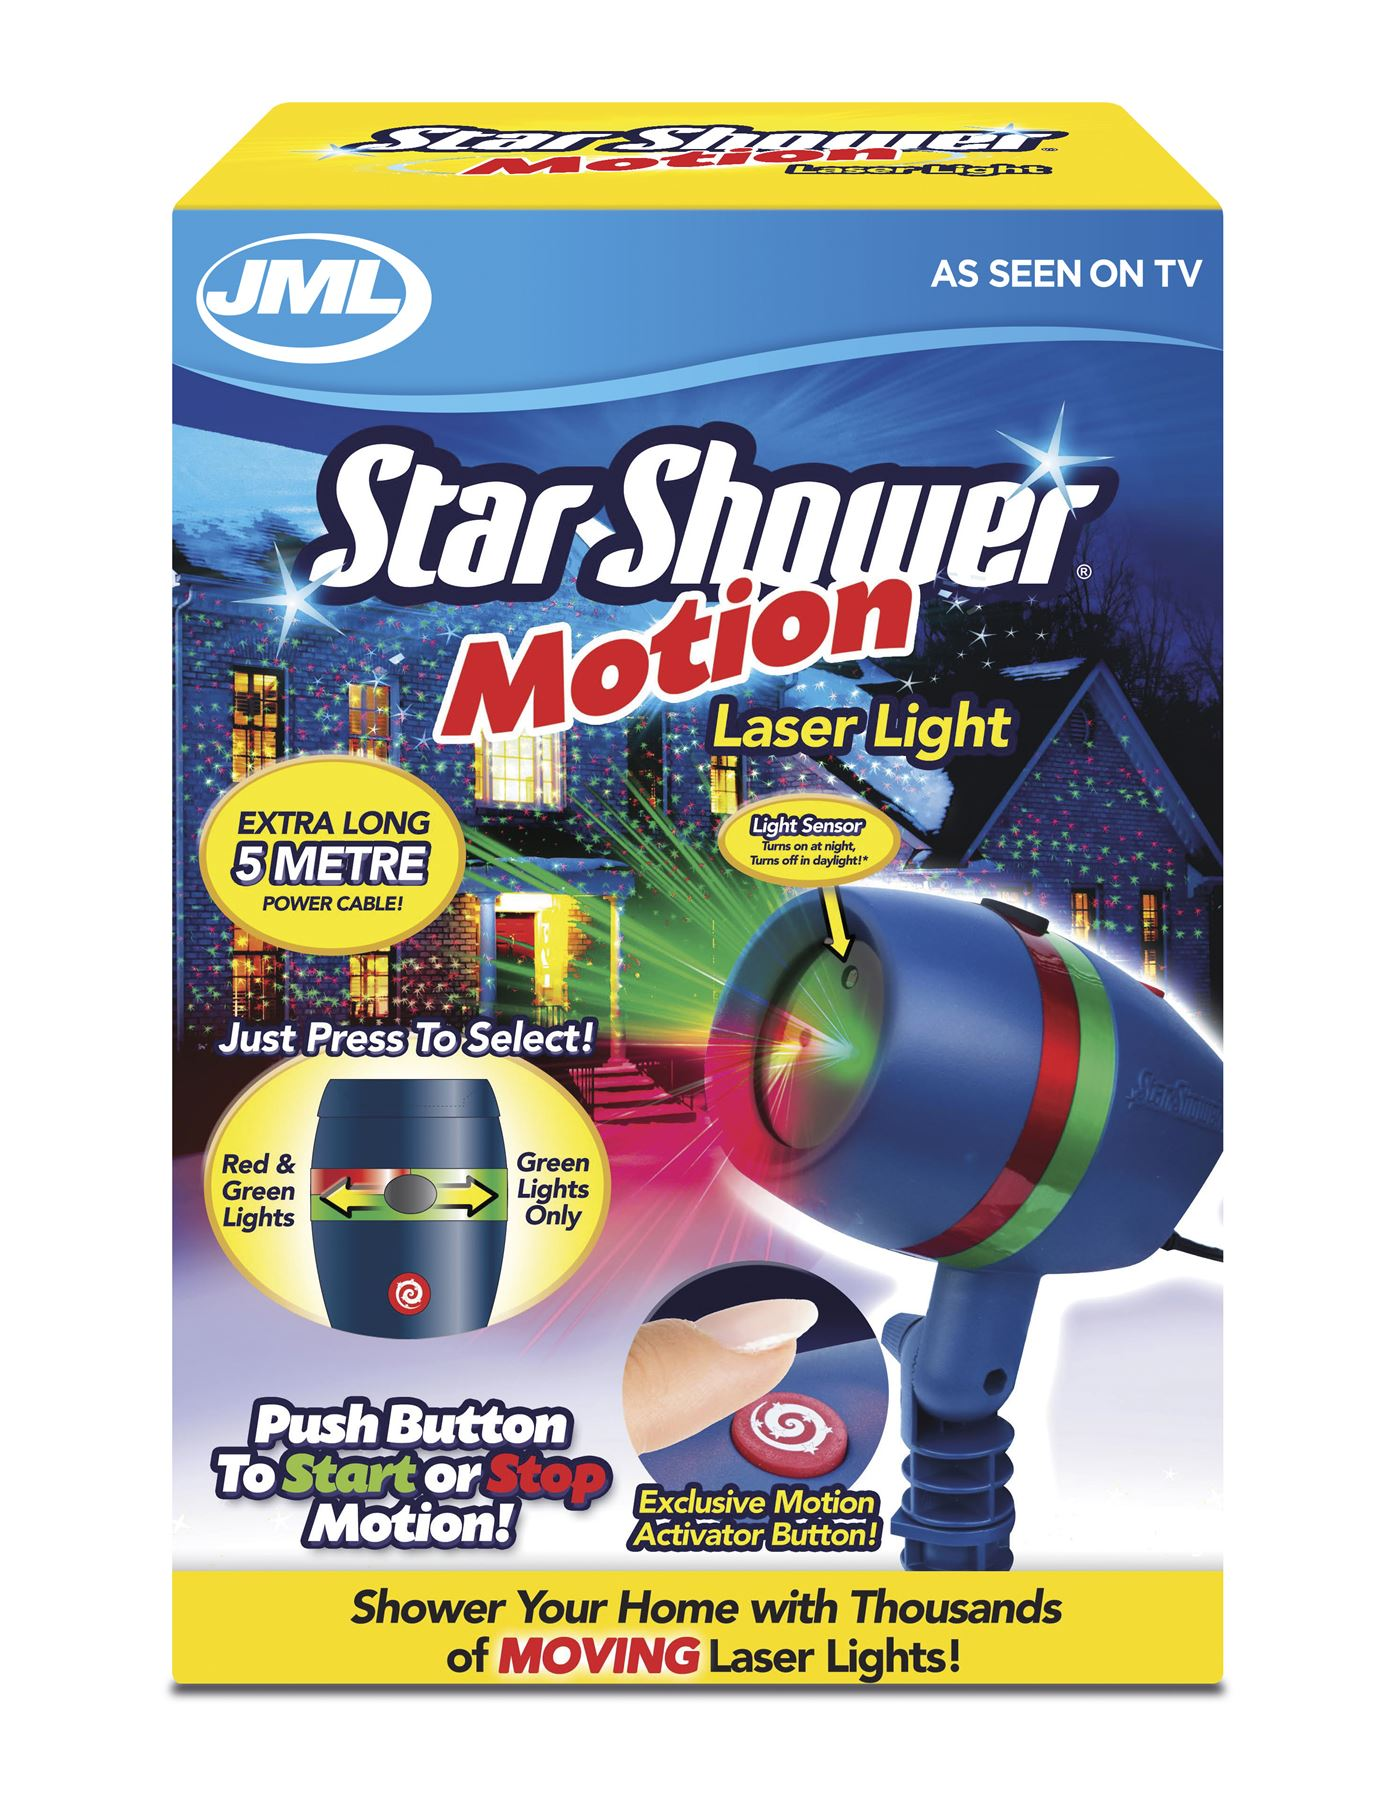 Jml star shower motion led landscape moving light projector system 5m cable ebay for Star shower motion m6